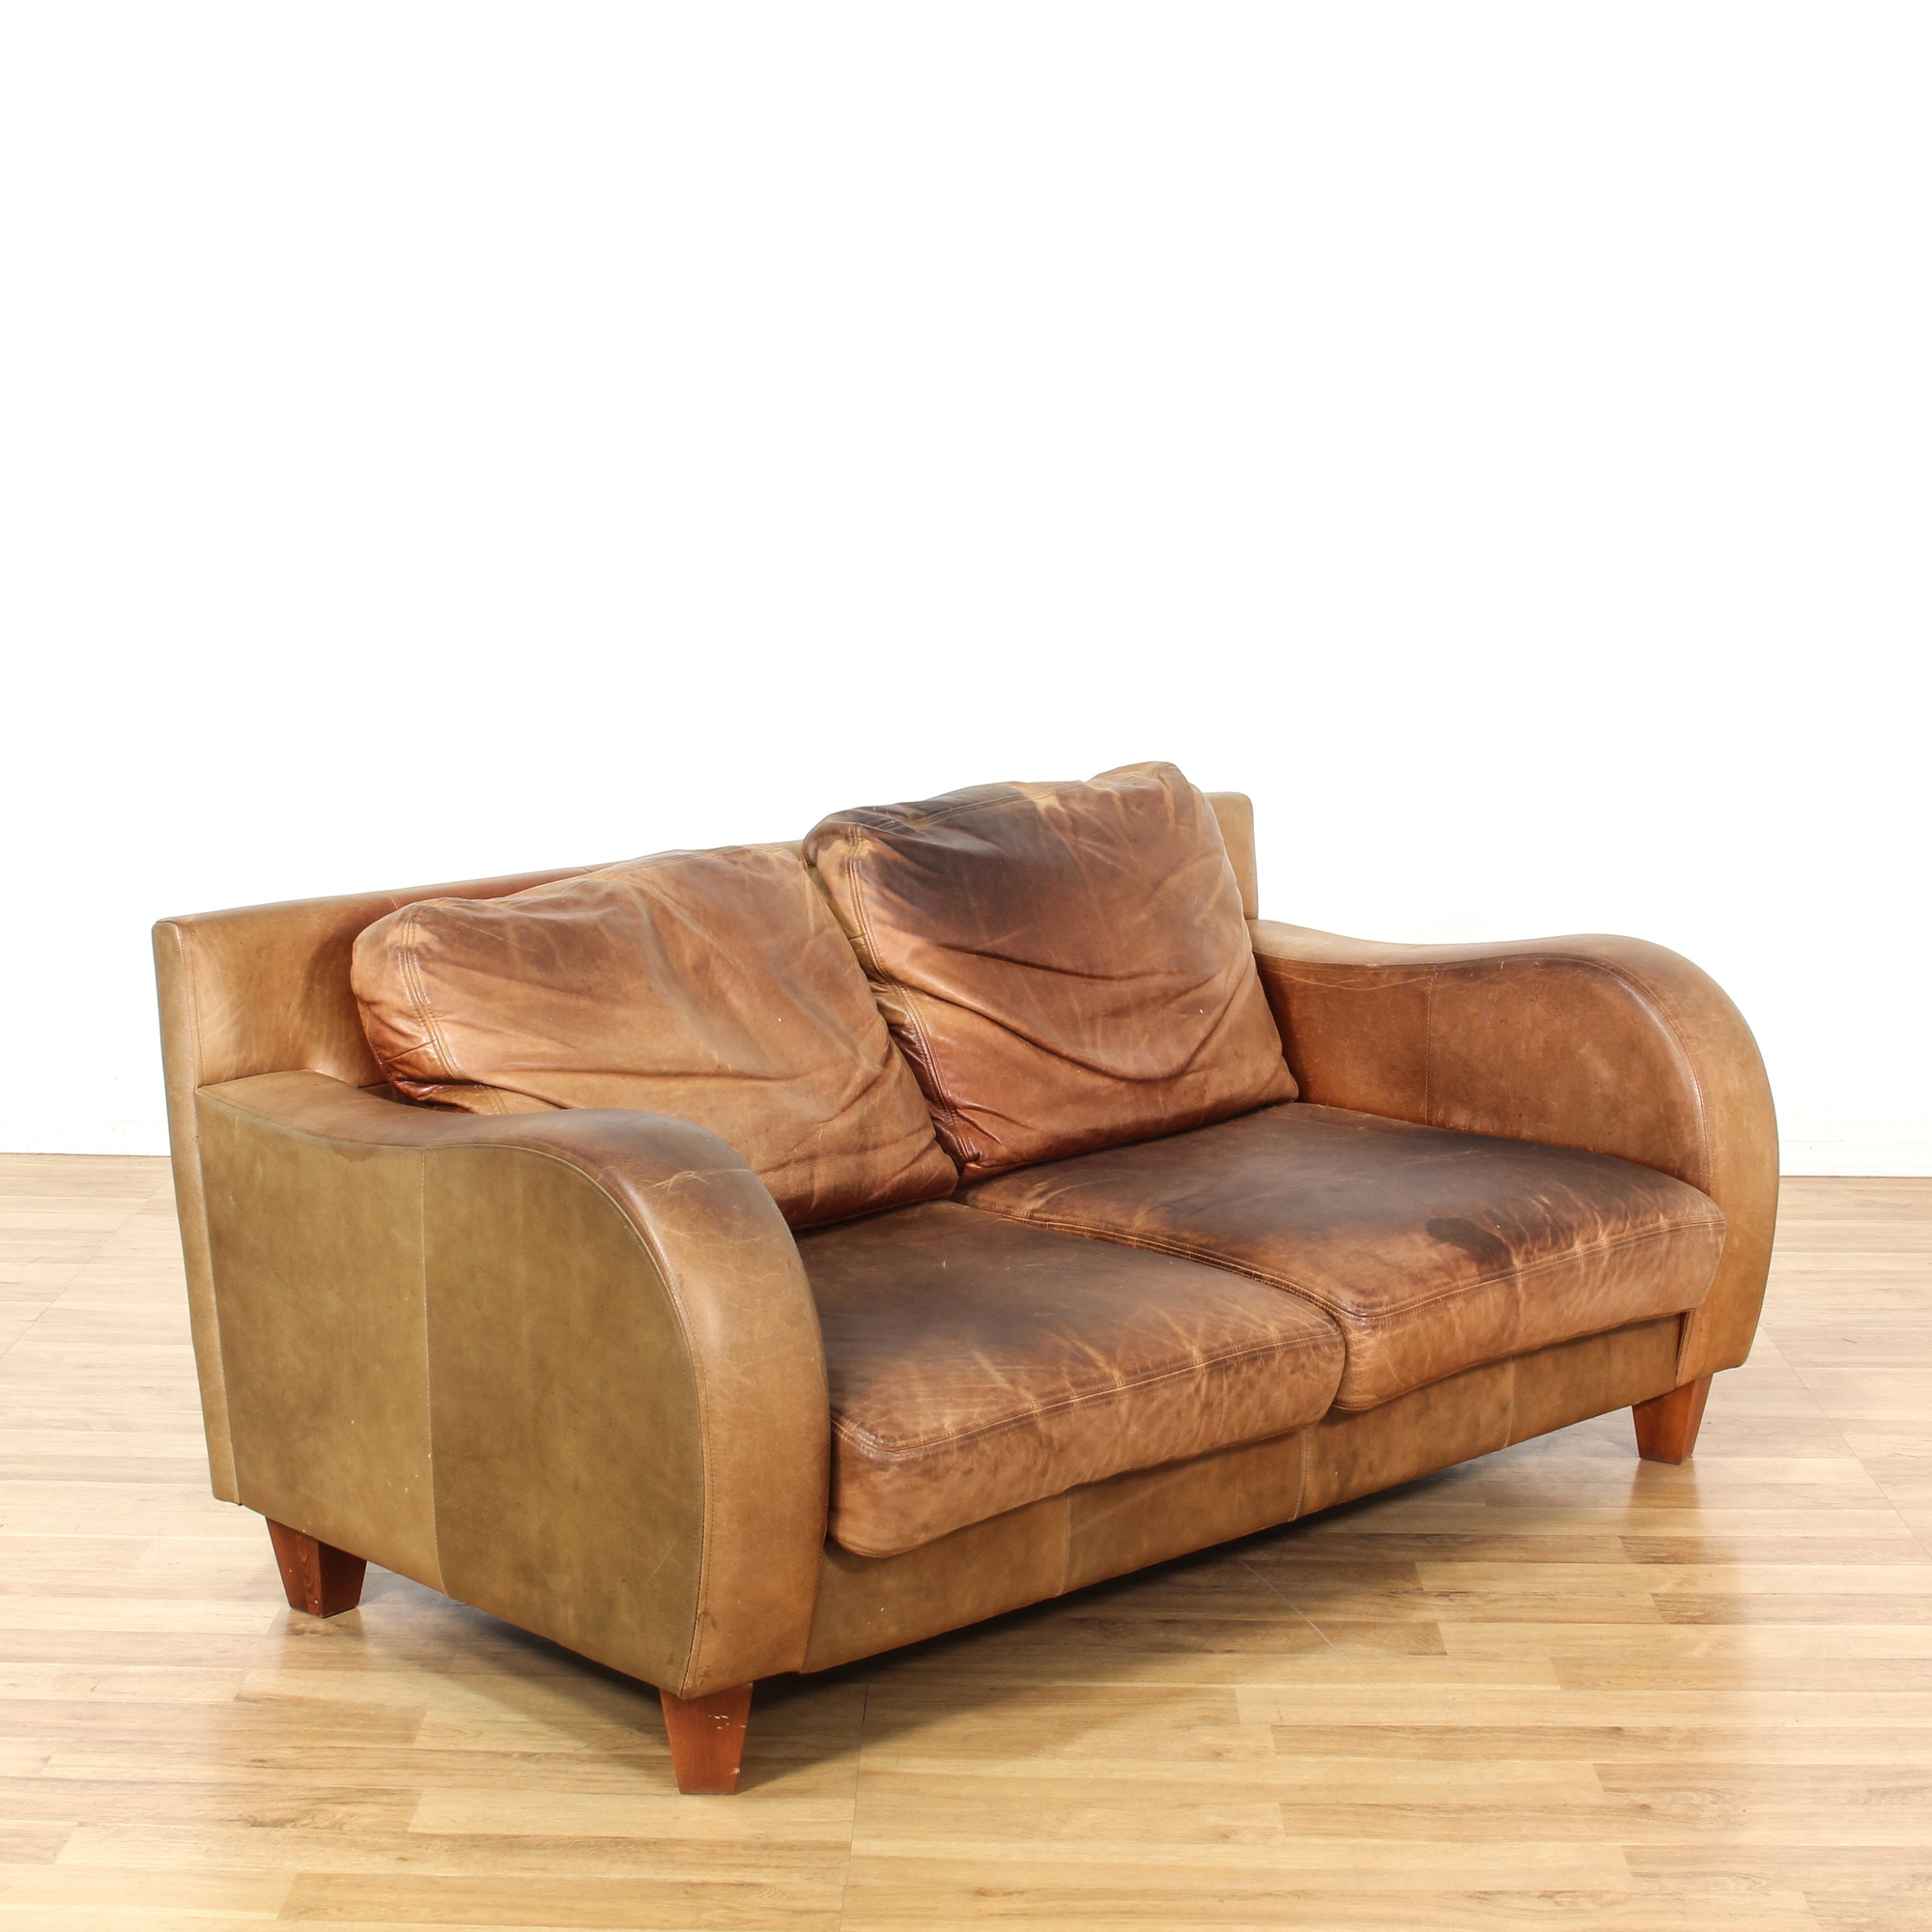 Curved Yellow Leather Sofa: Brown Leather Sofa W/ Curved Arm Rests